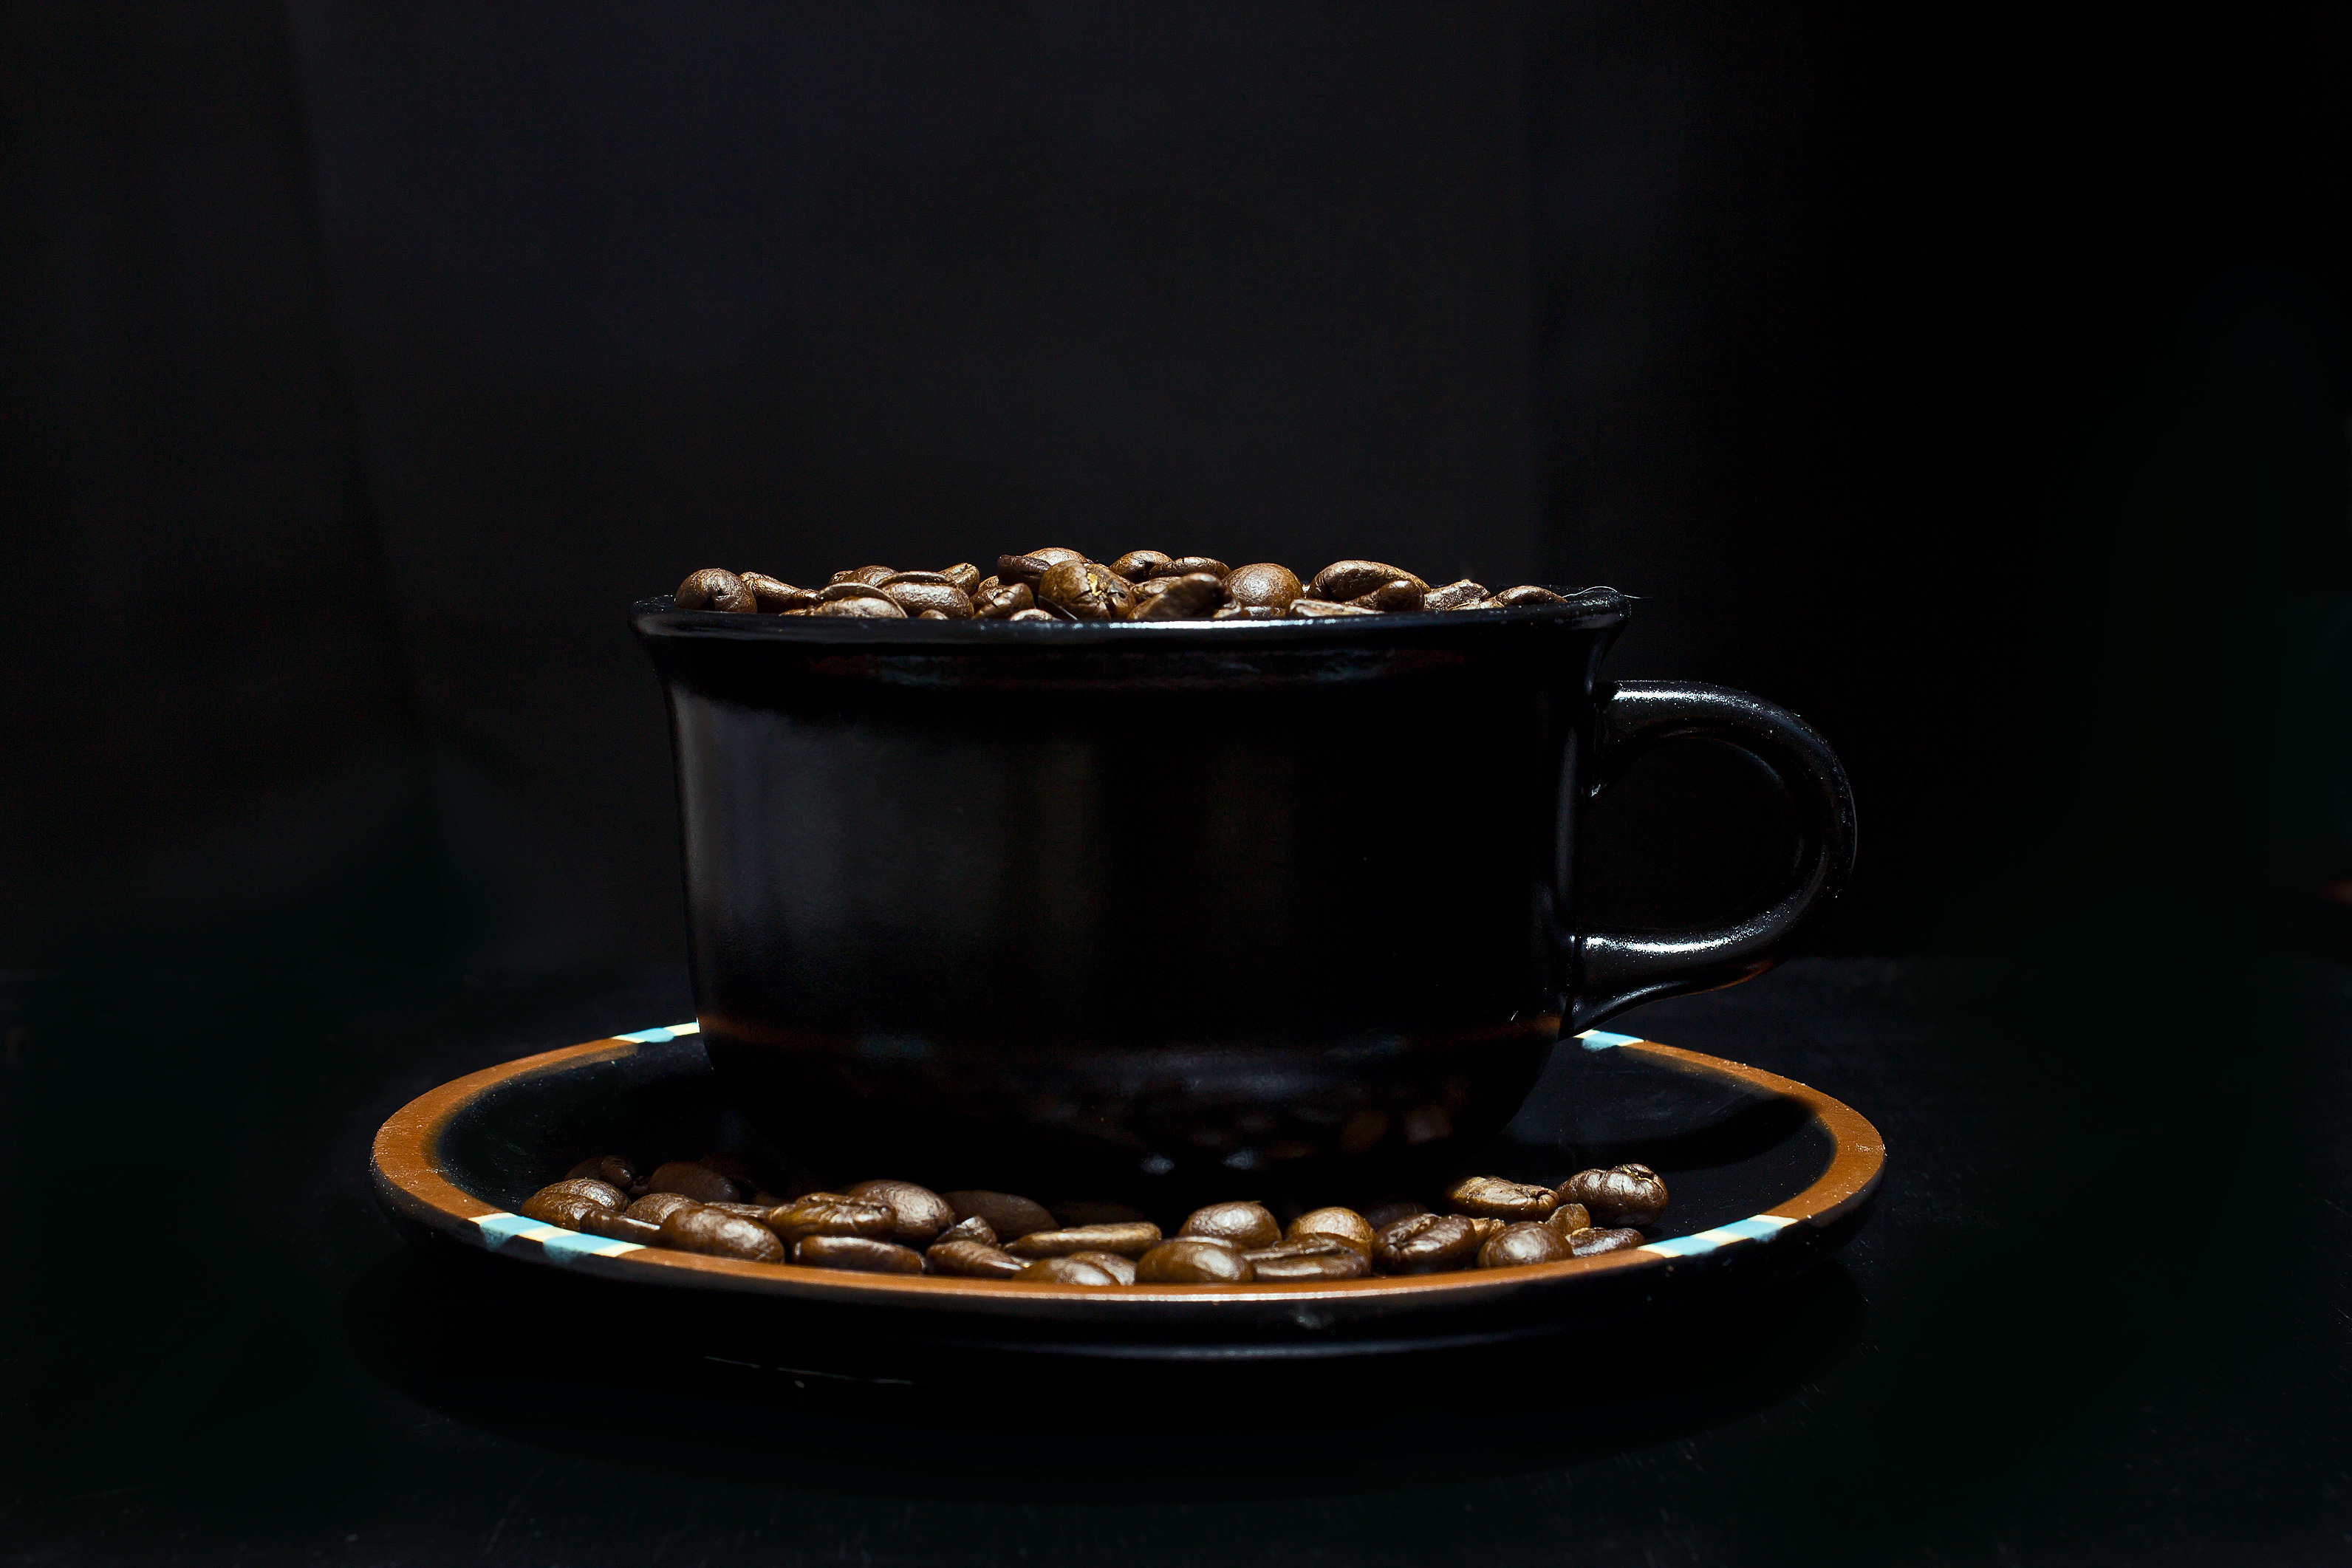 Best Coffee and Cafes In Dublin - Where to get great coffee in Dublin